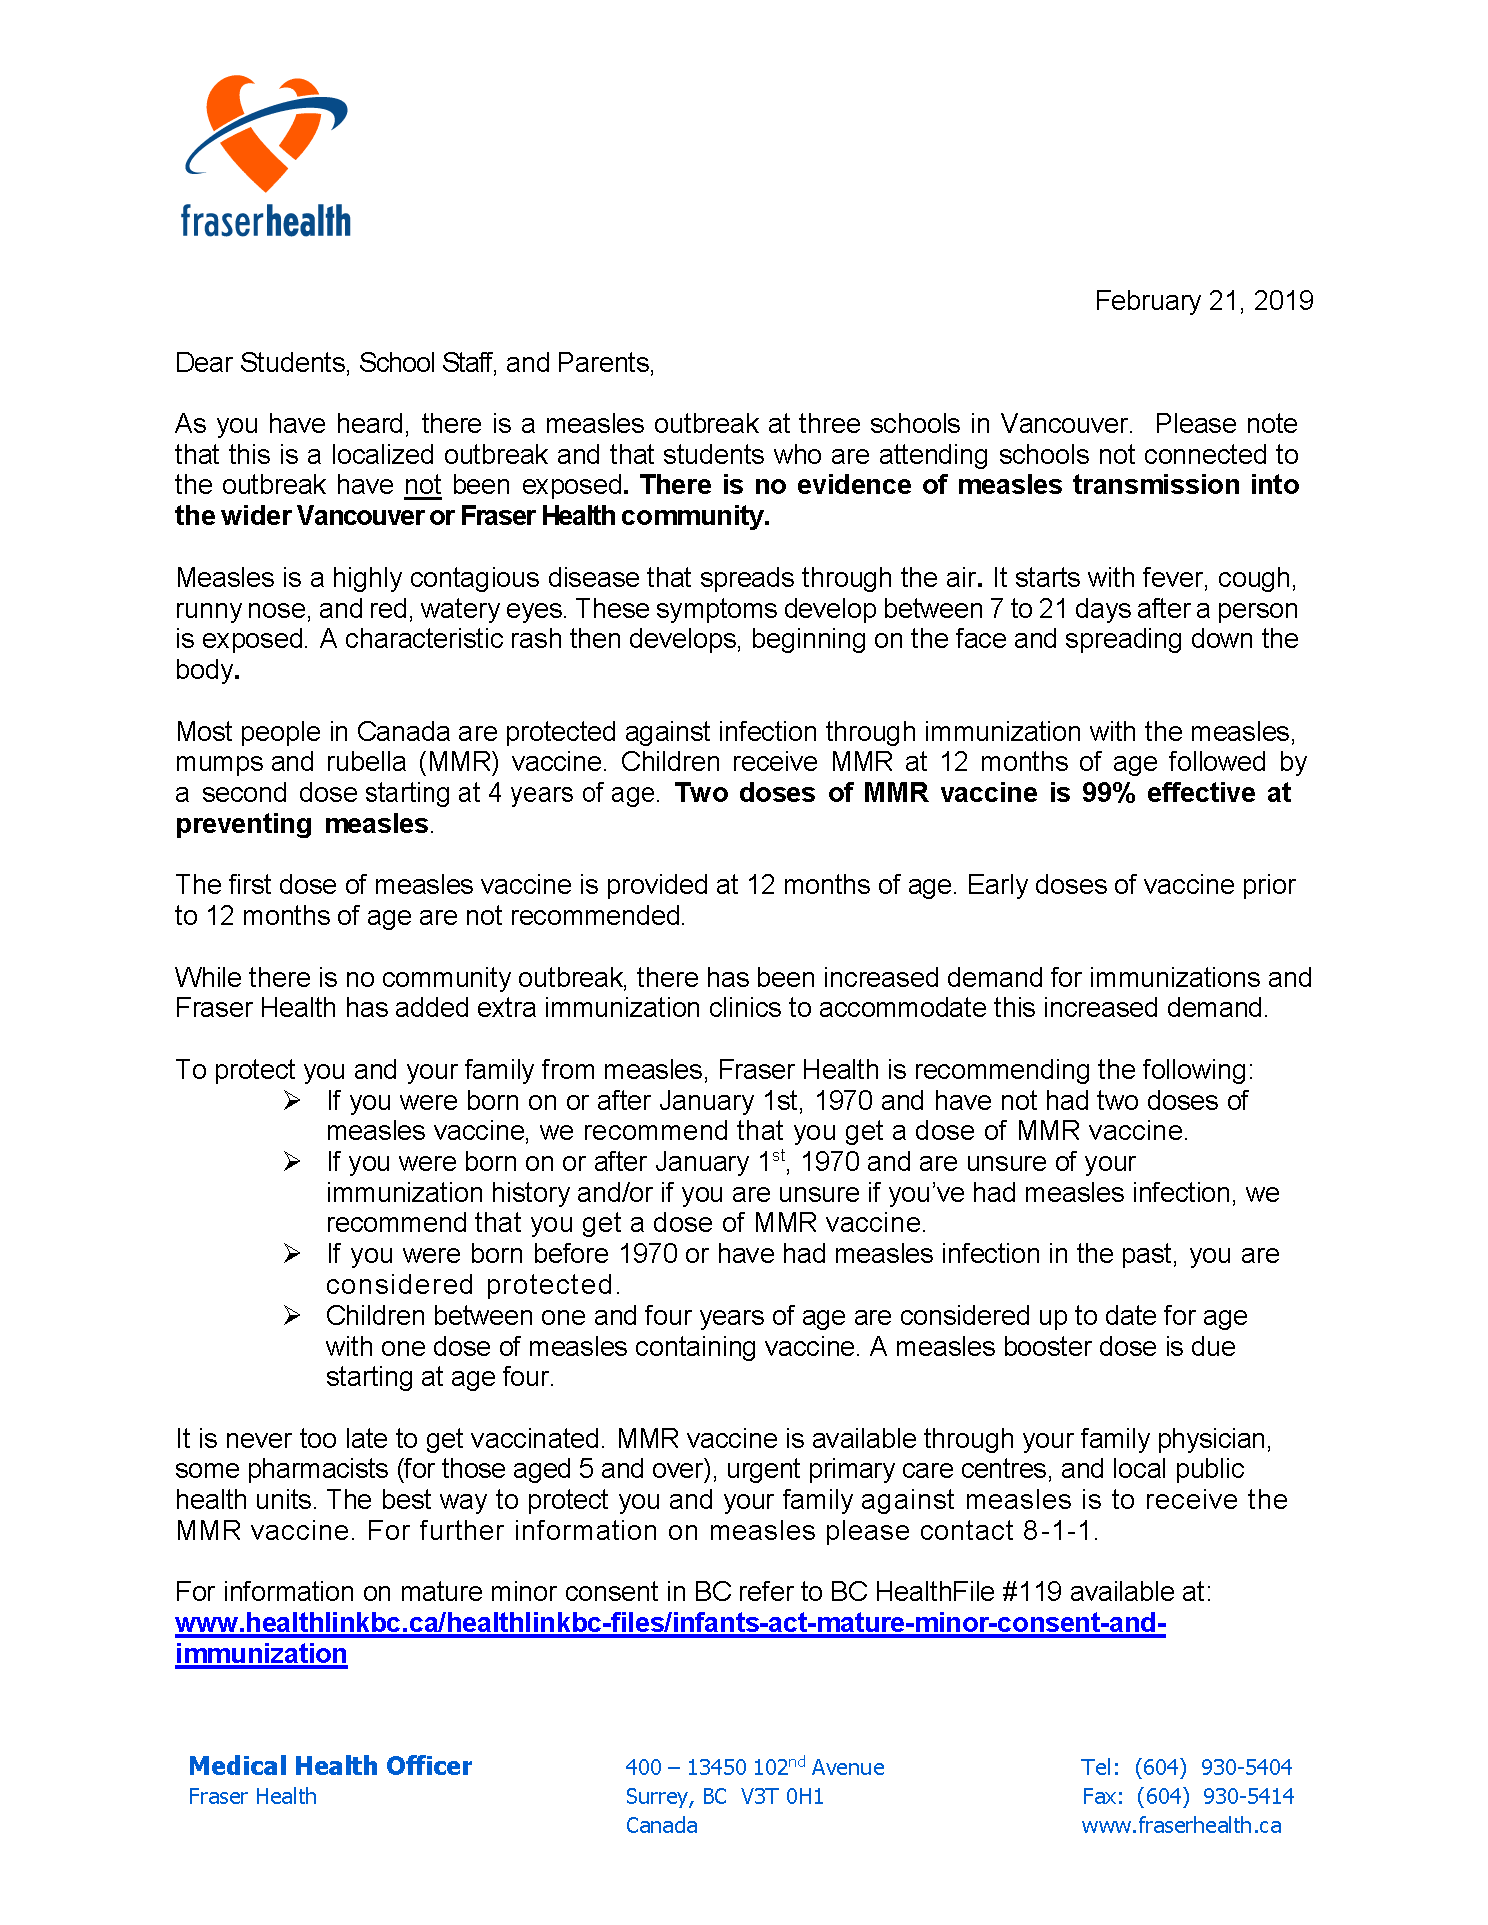 Measles letter to SDs and Parents - AB_20190221